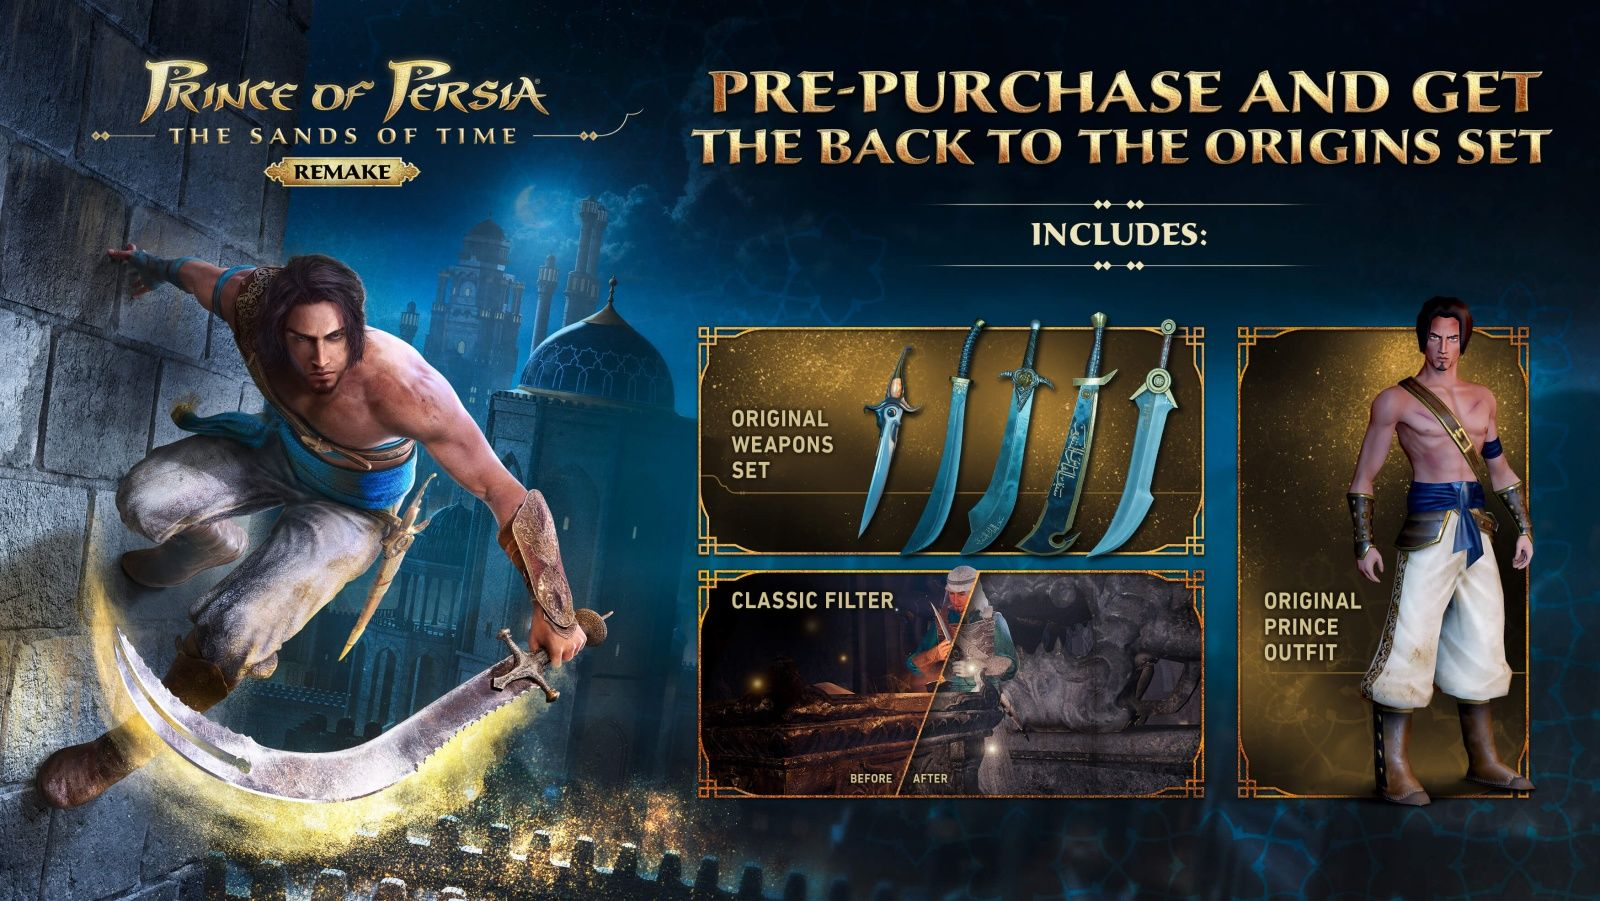 Prince of Persia: The Sands of Time Remake ertelendi